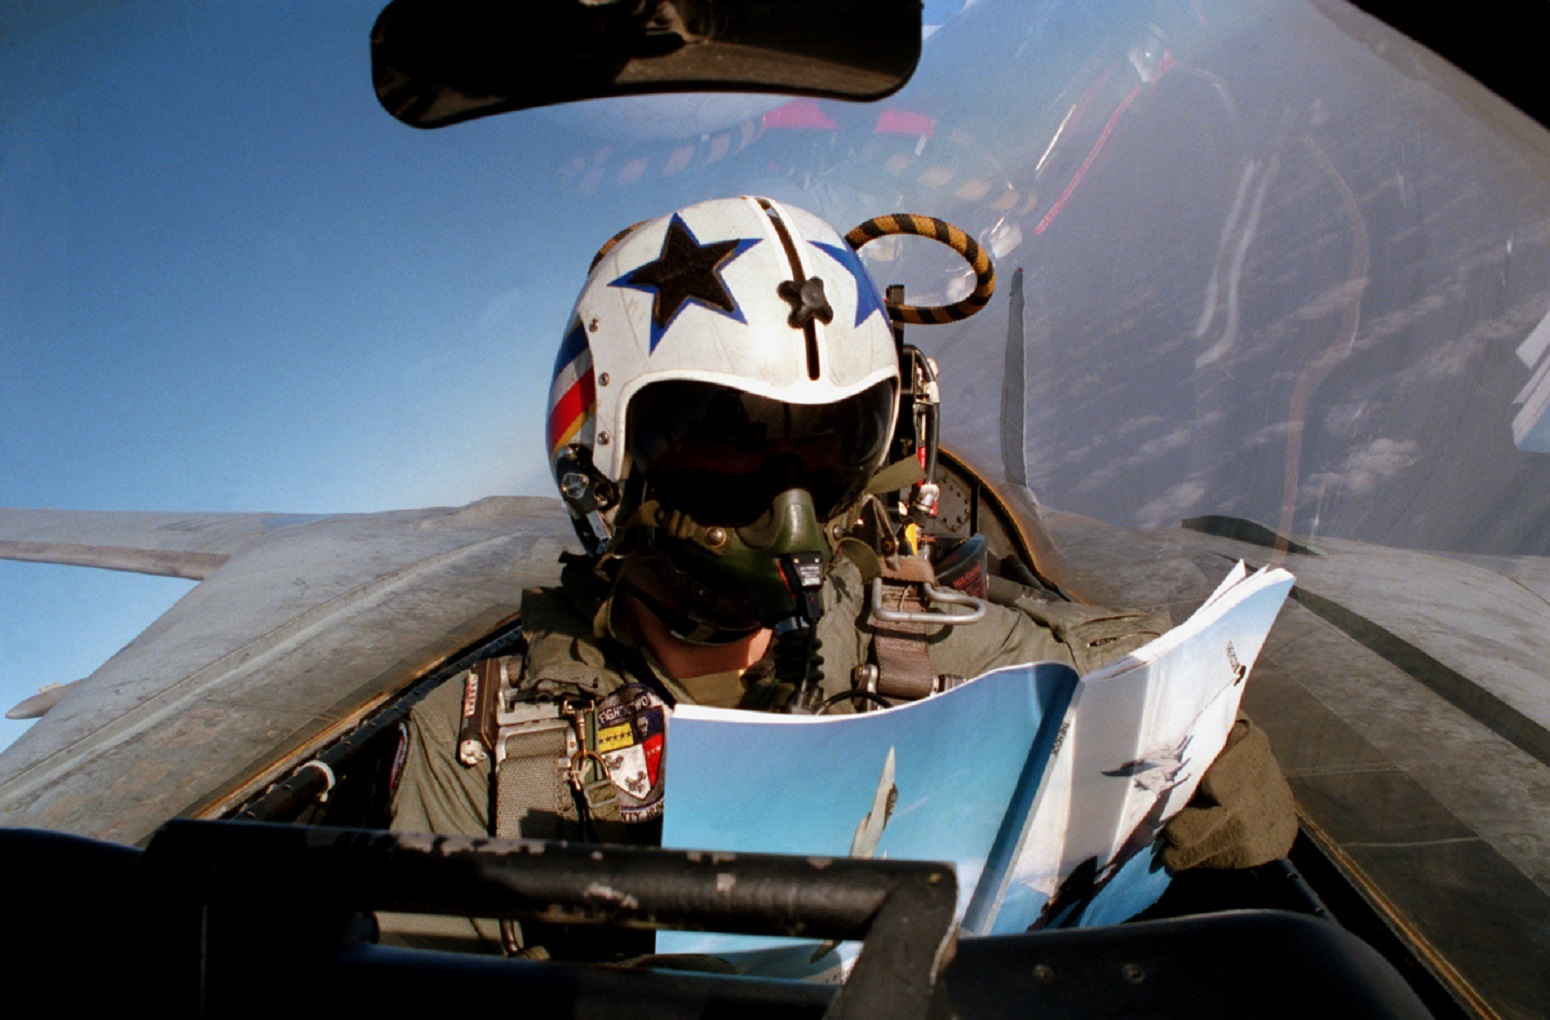 The Secret Story of This F-14 Fighter Pilot Cockpit Selfie Is Pure